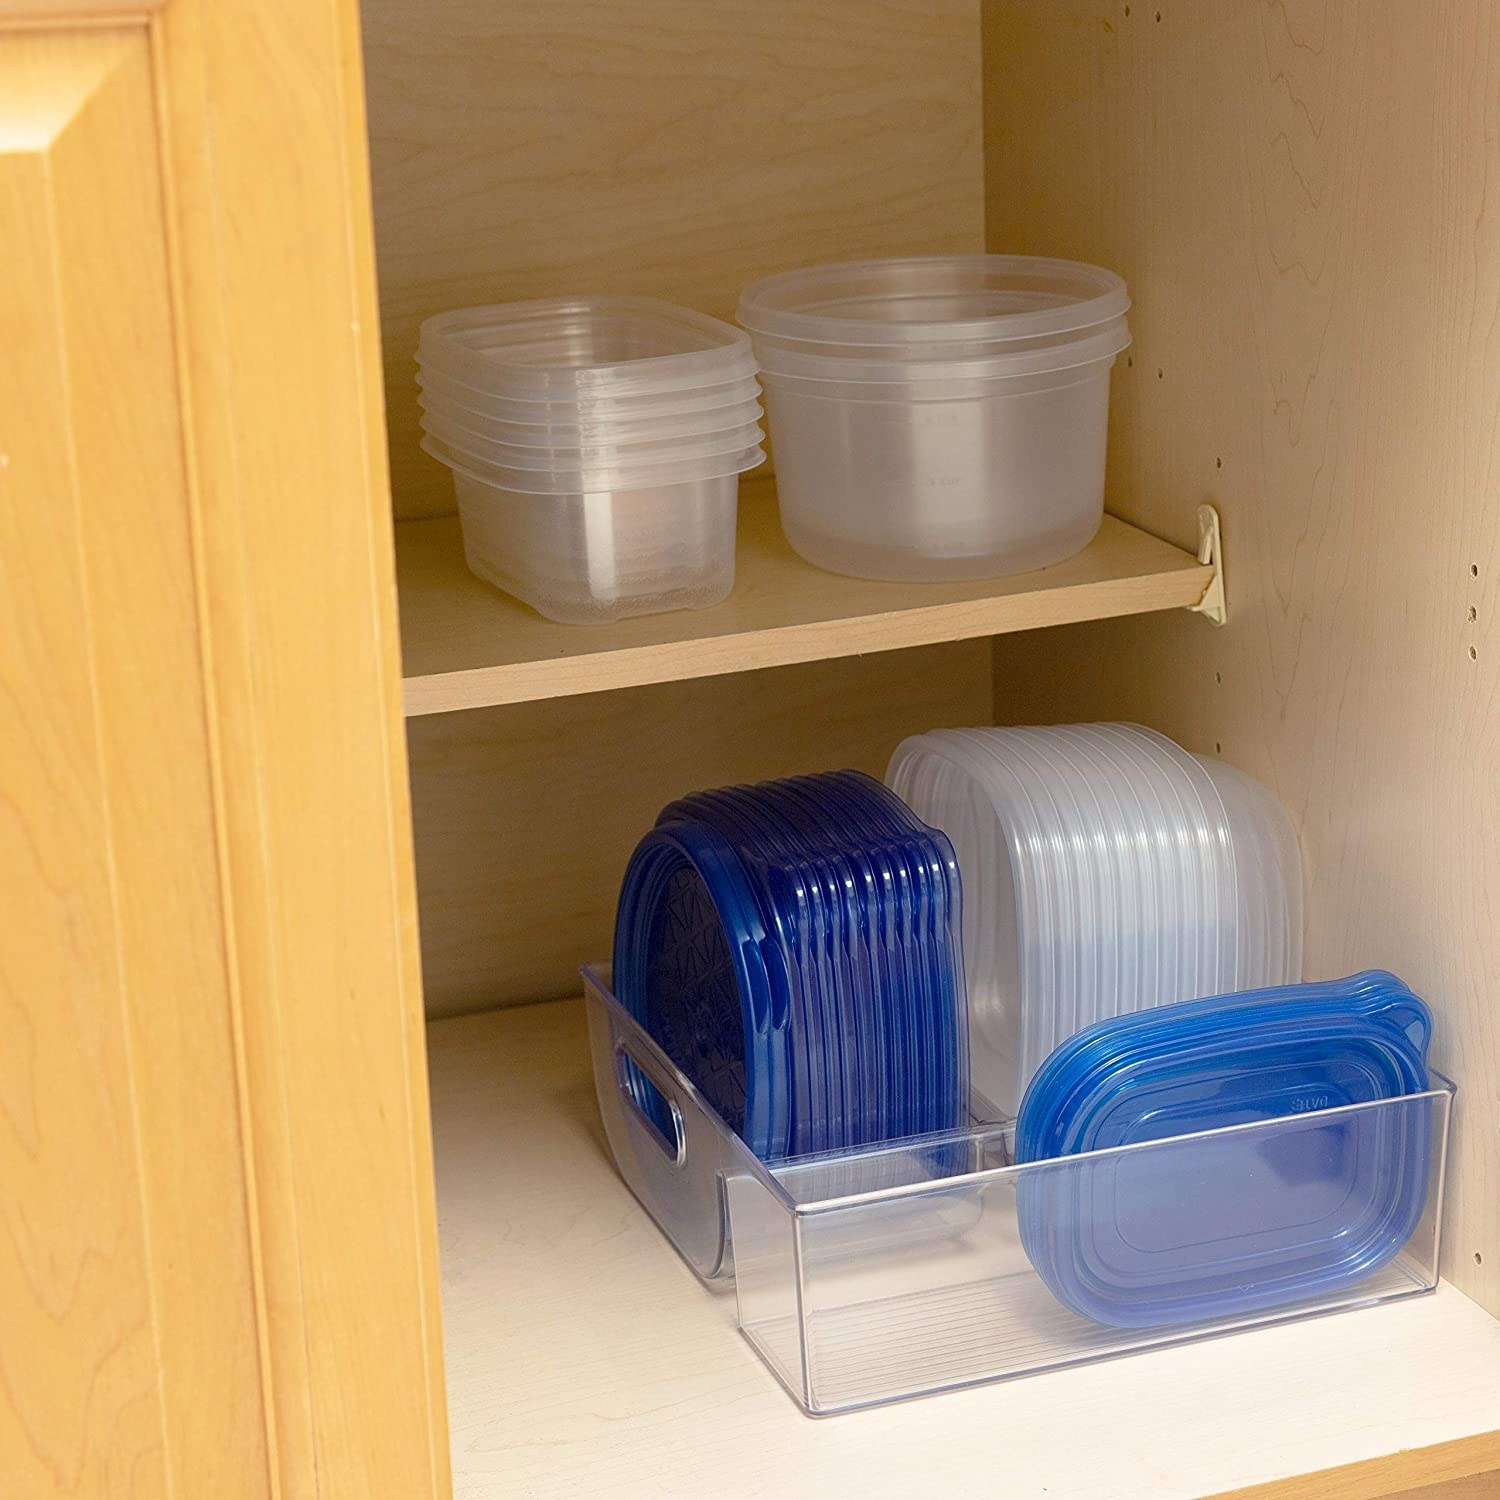 A plastic container organizer with three compartments for neatly storing lids and containers in each separate compartment